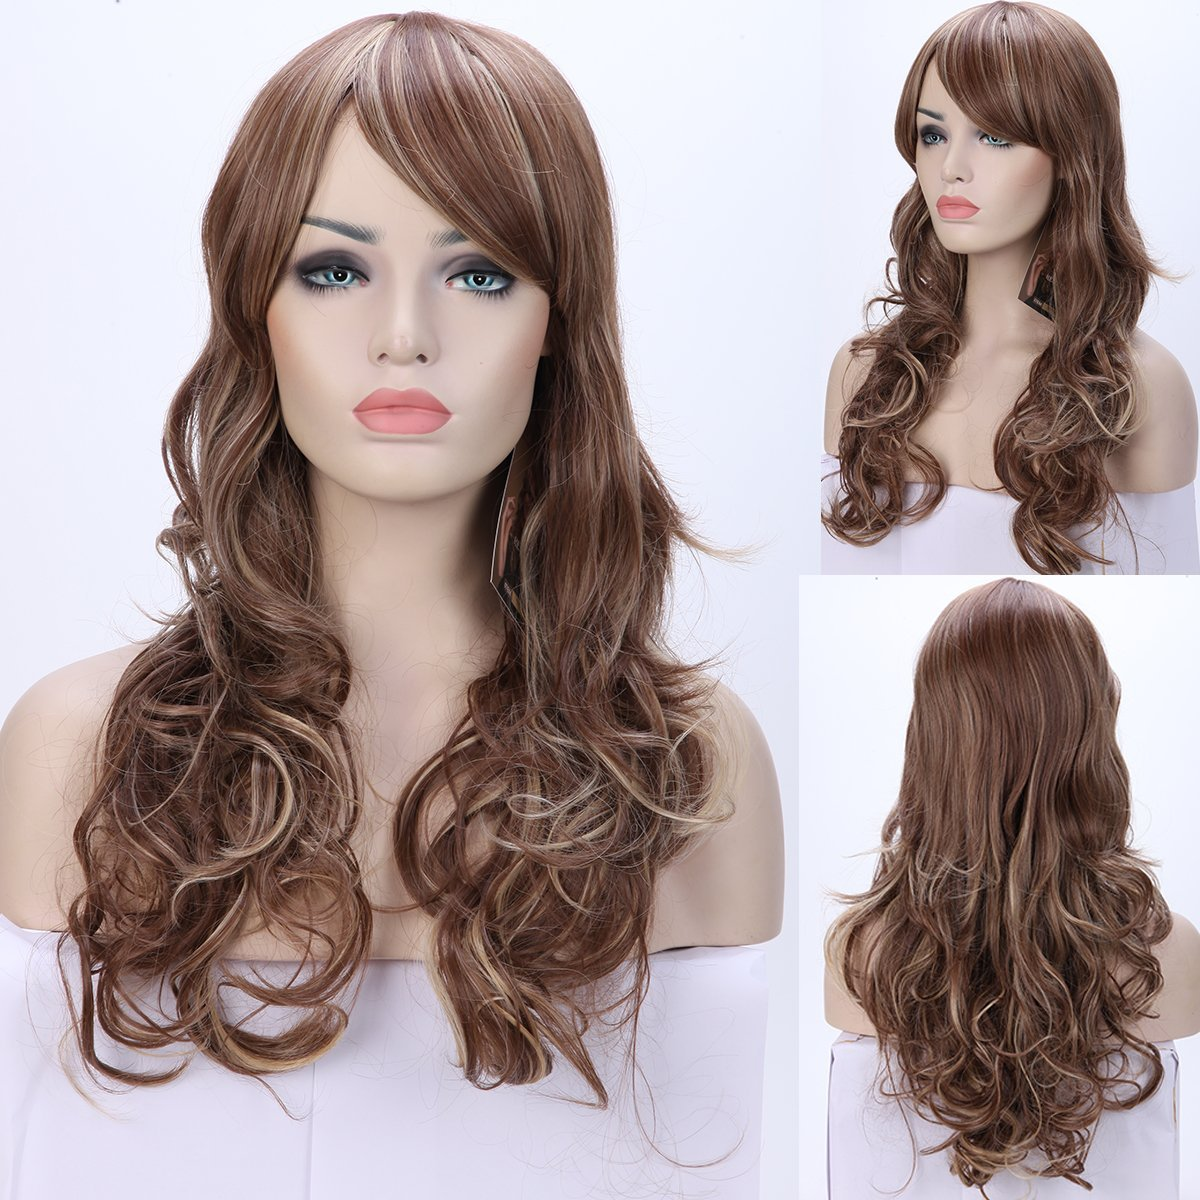 """S-noilite 20"""" Ombre Brown Blonde Mix Full Wig Curly Synthetic Wigs Lady Girls Daily Costume Wig"""